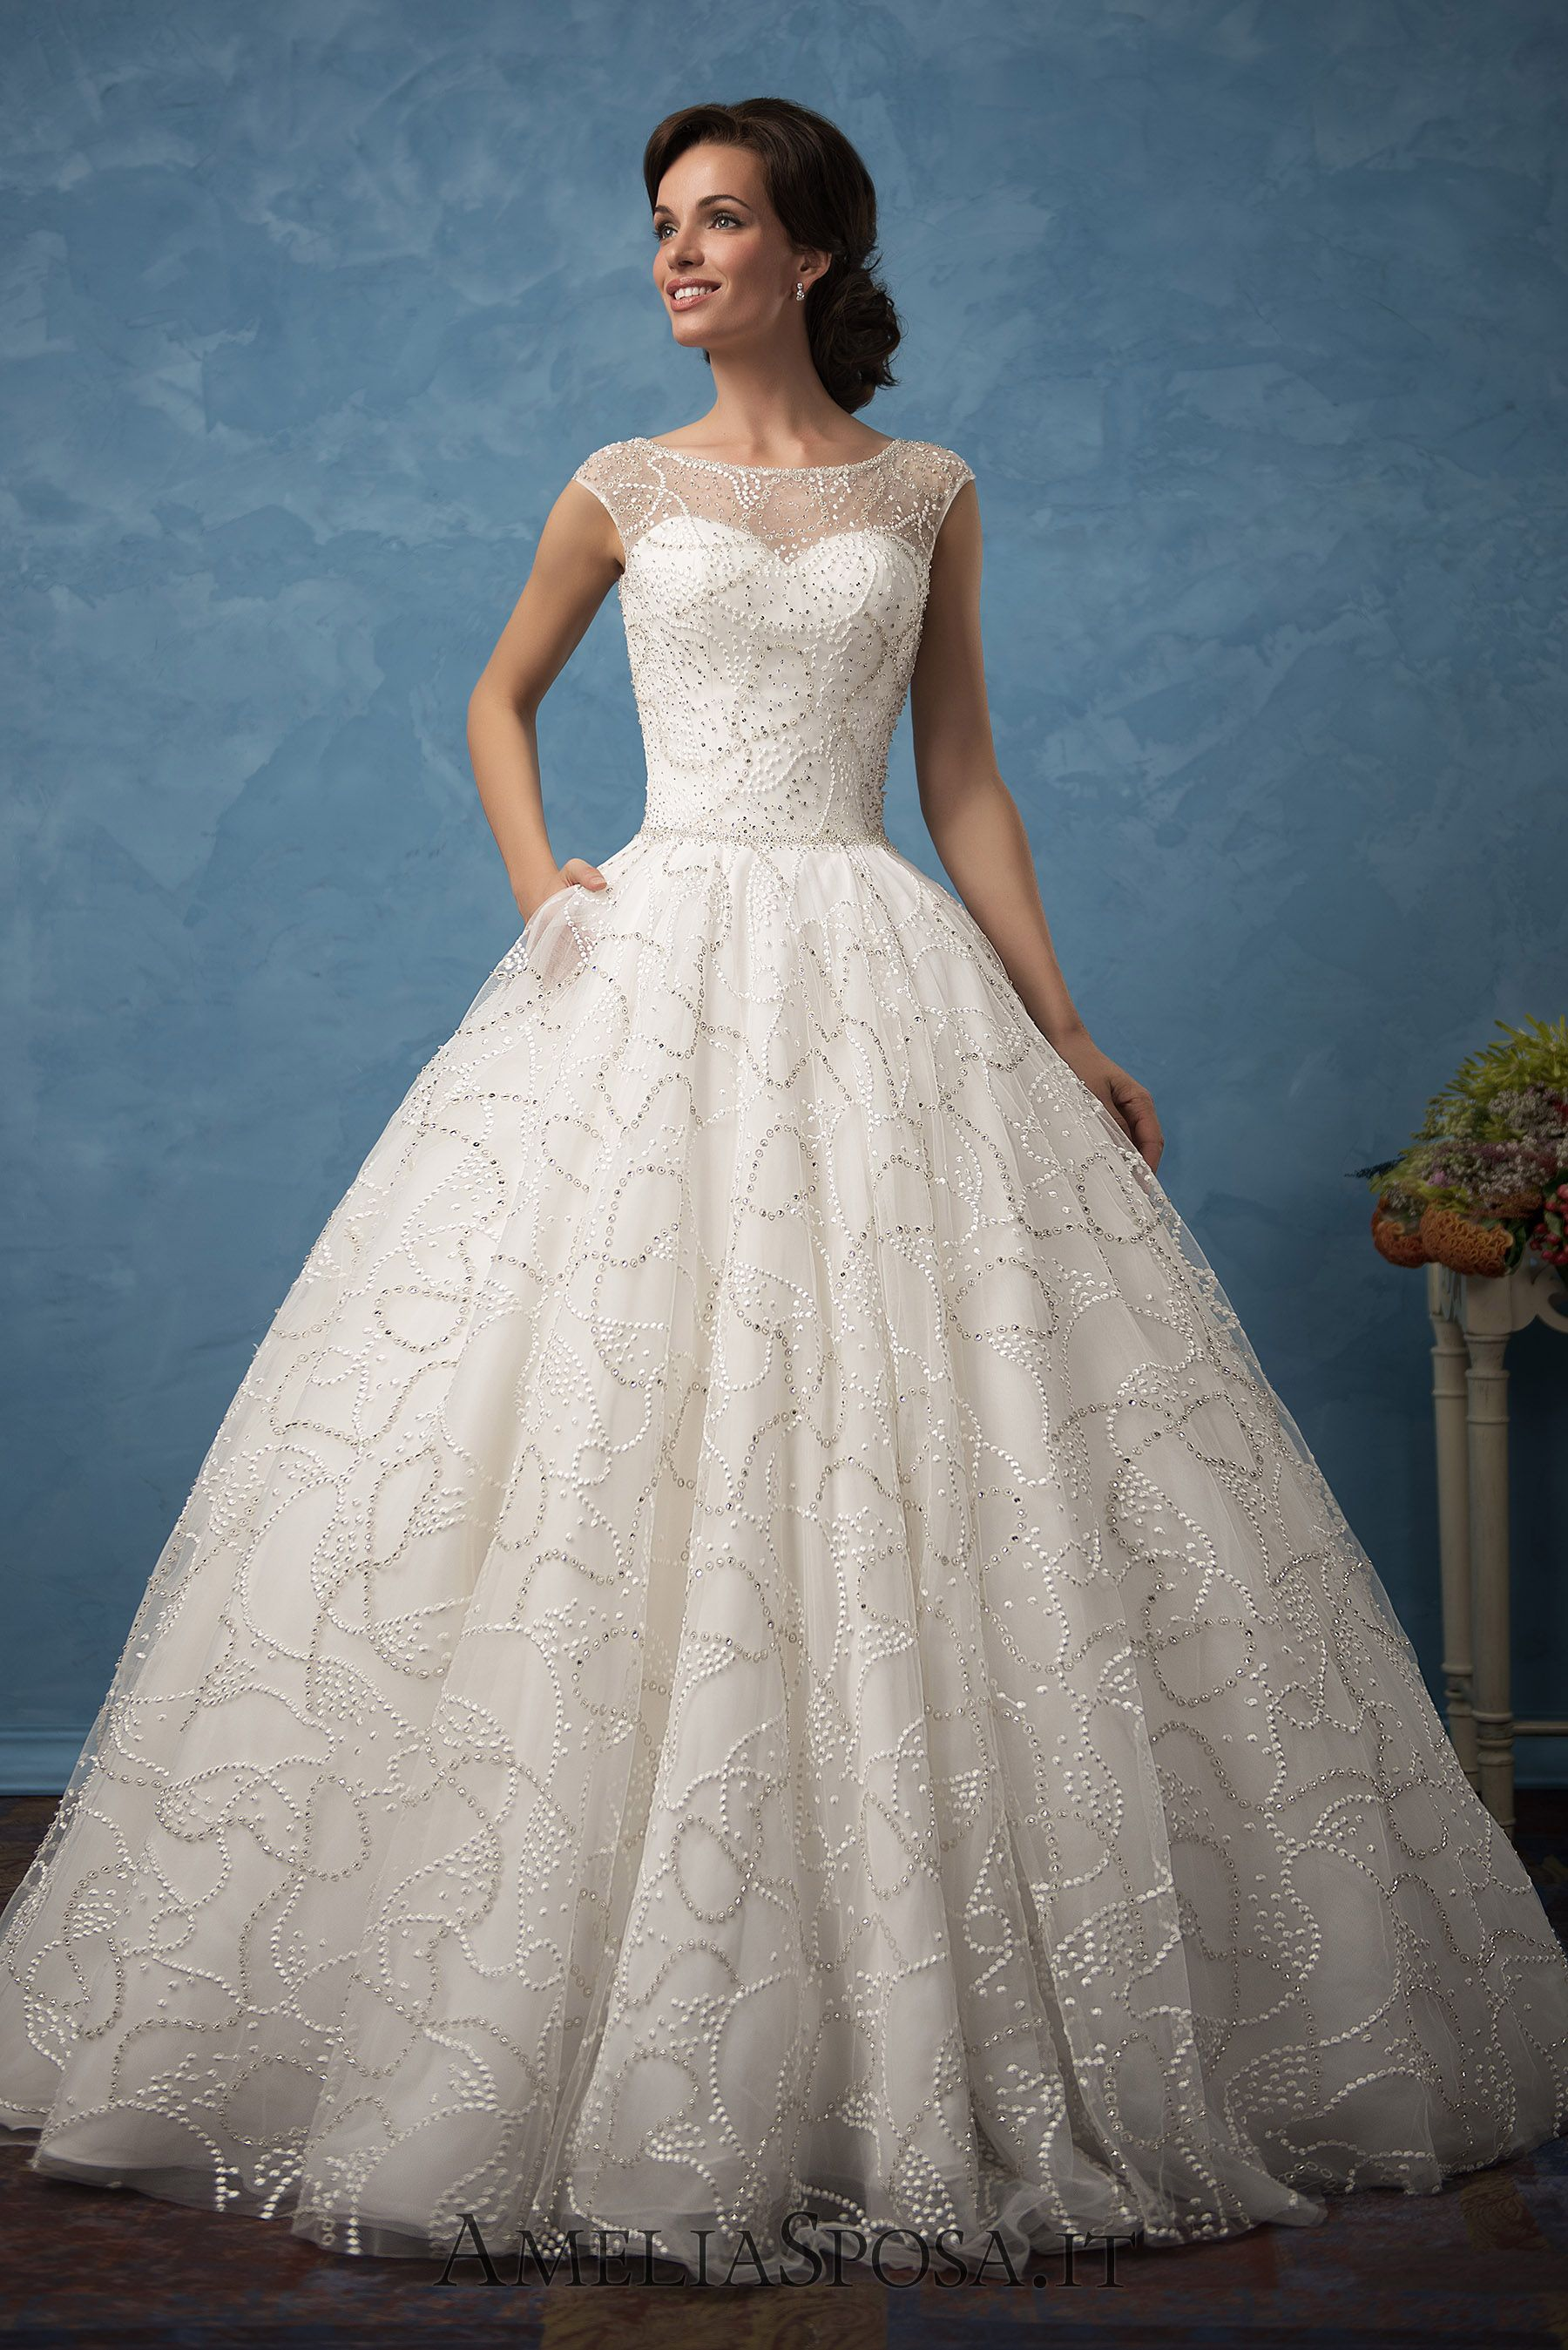 Wedding dress vanessa silhouette aline ball gown amelia sposa